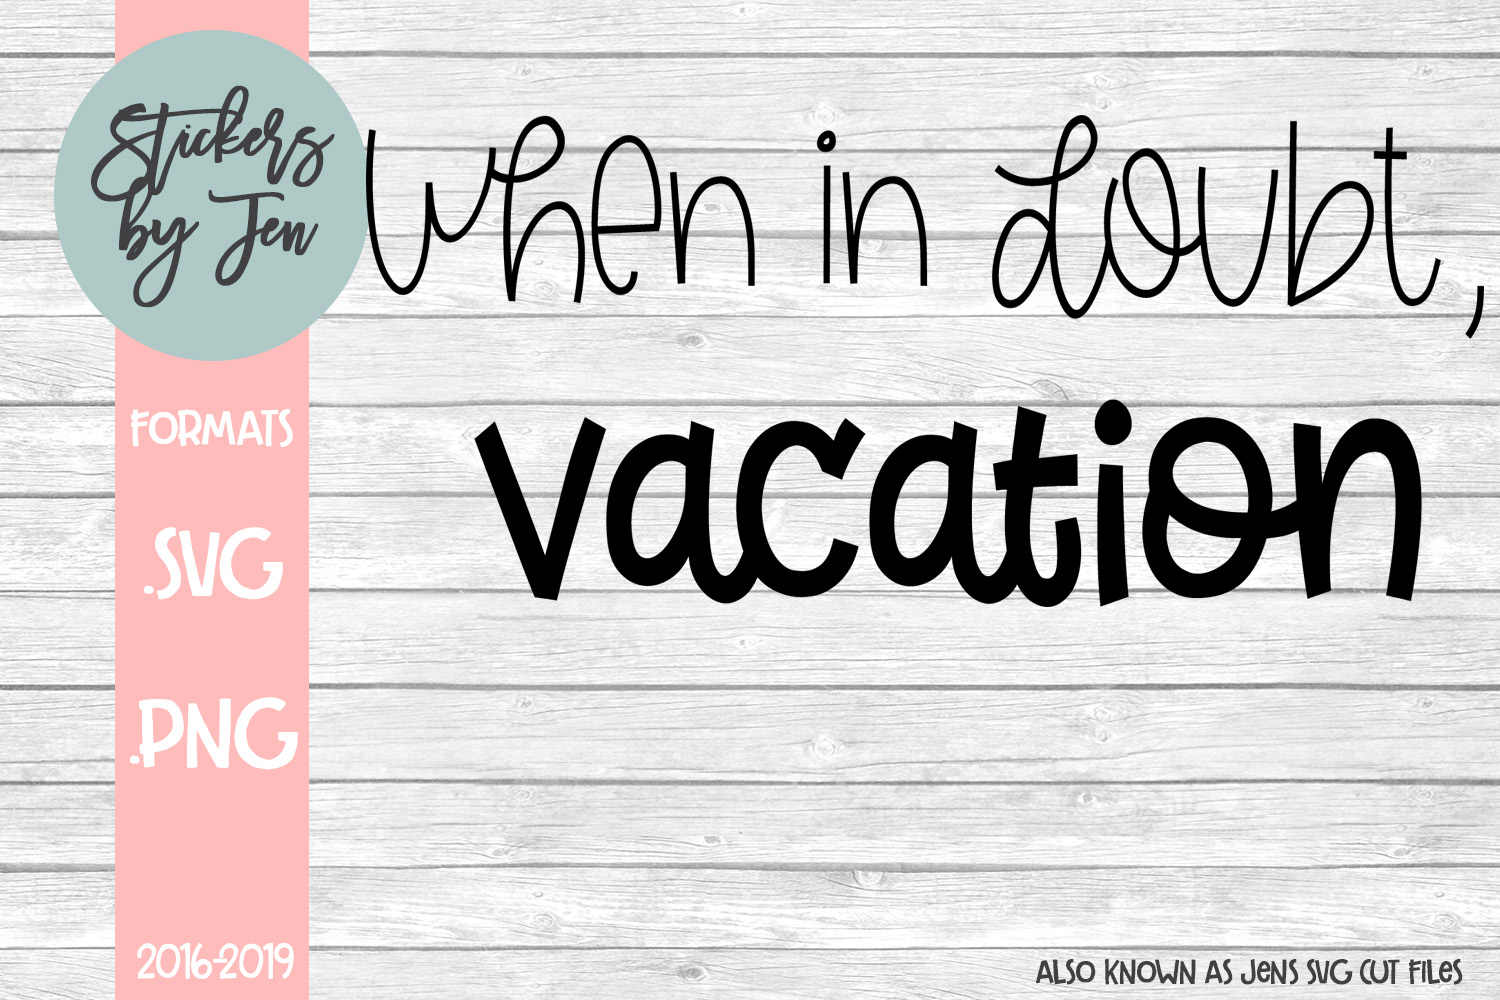 Download Free When In Doubt Vacation Graphic By Stickers By Jennifer for Cricut Explore, Silhouette and other cutting machines.